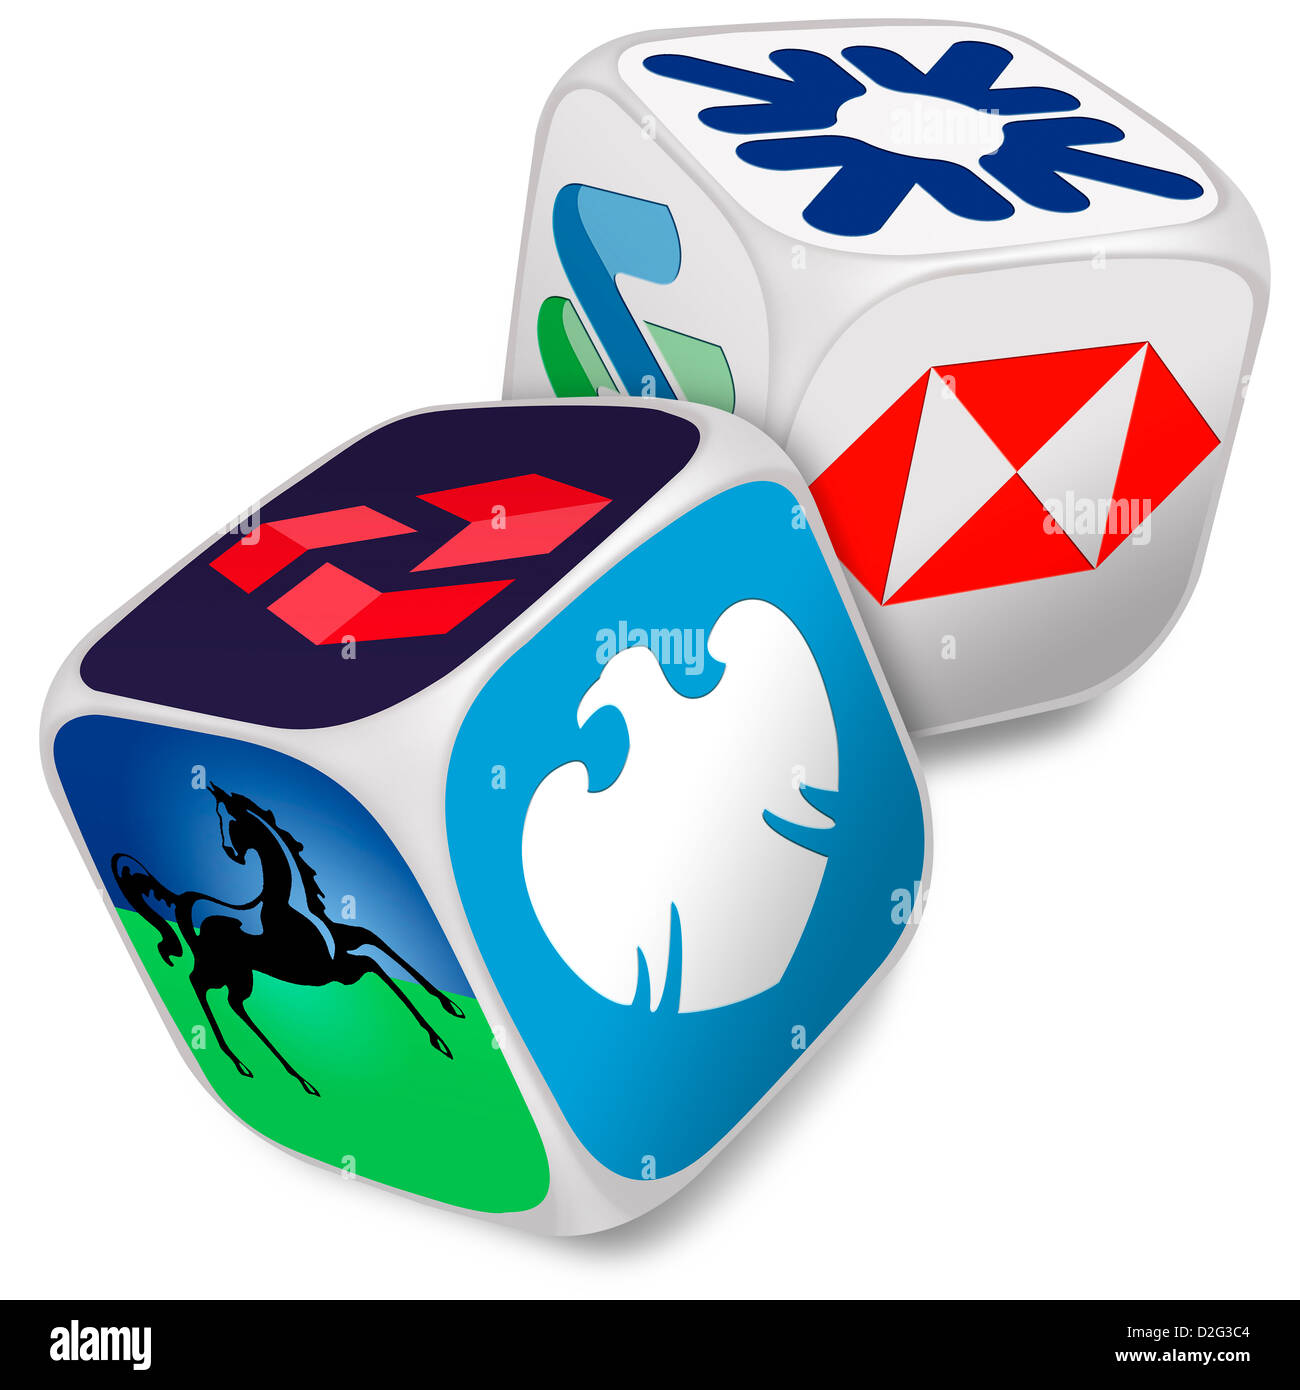 Pair of dice with the logos of the six top UK banks on their faces - Banking / choice / bank / gambling / risk concept - Stock Image